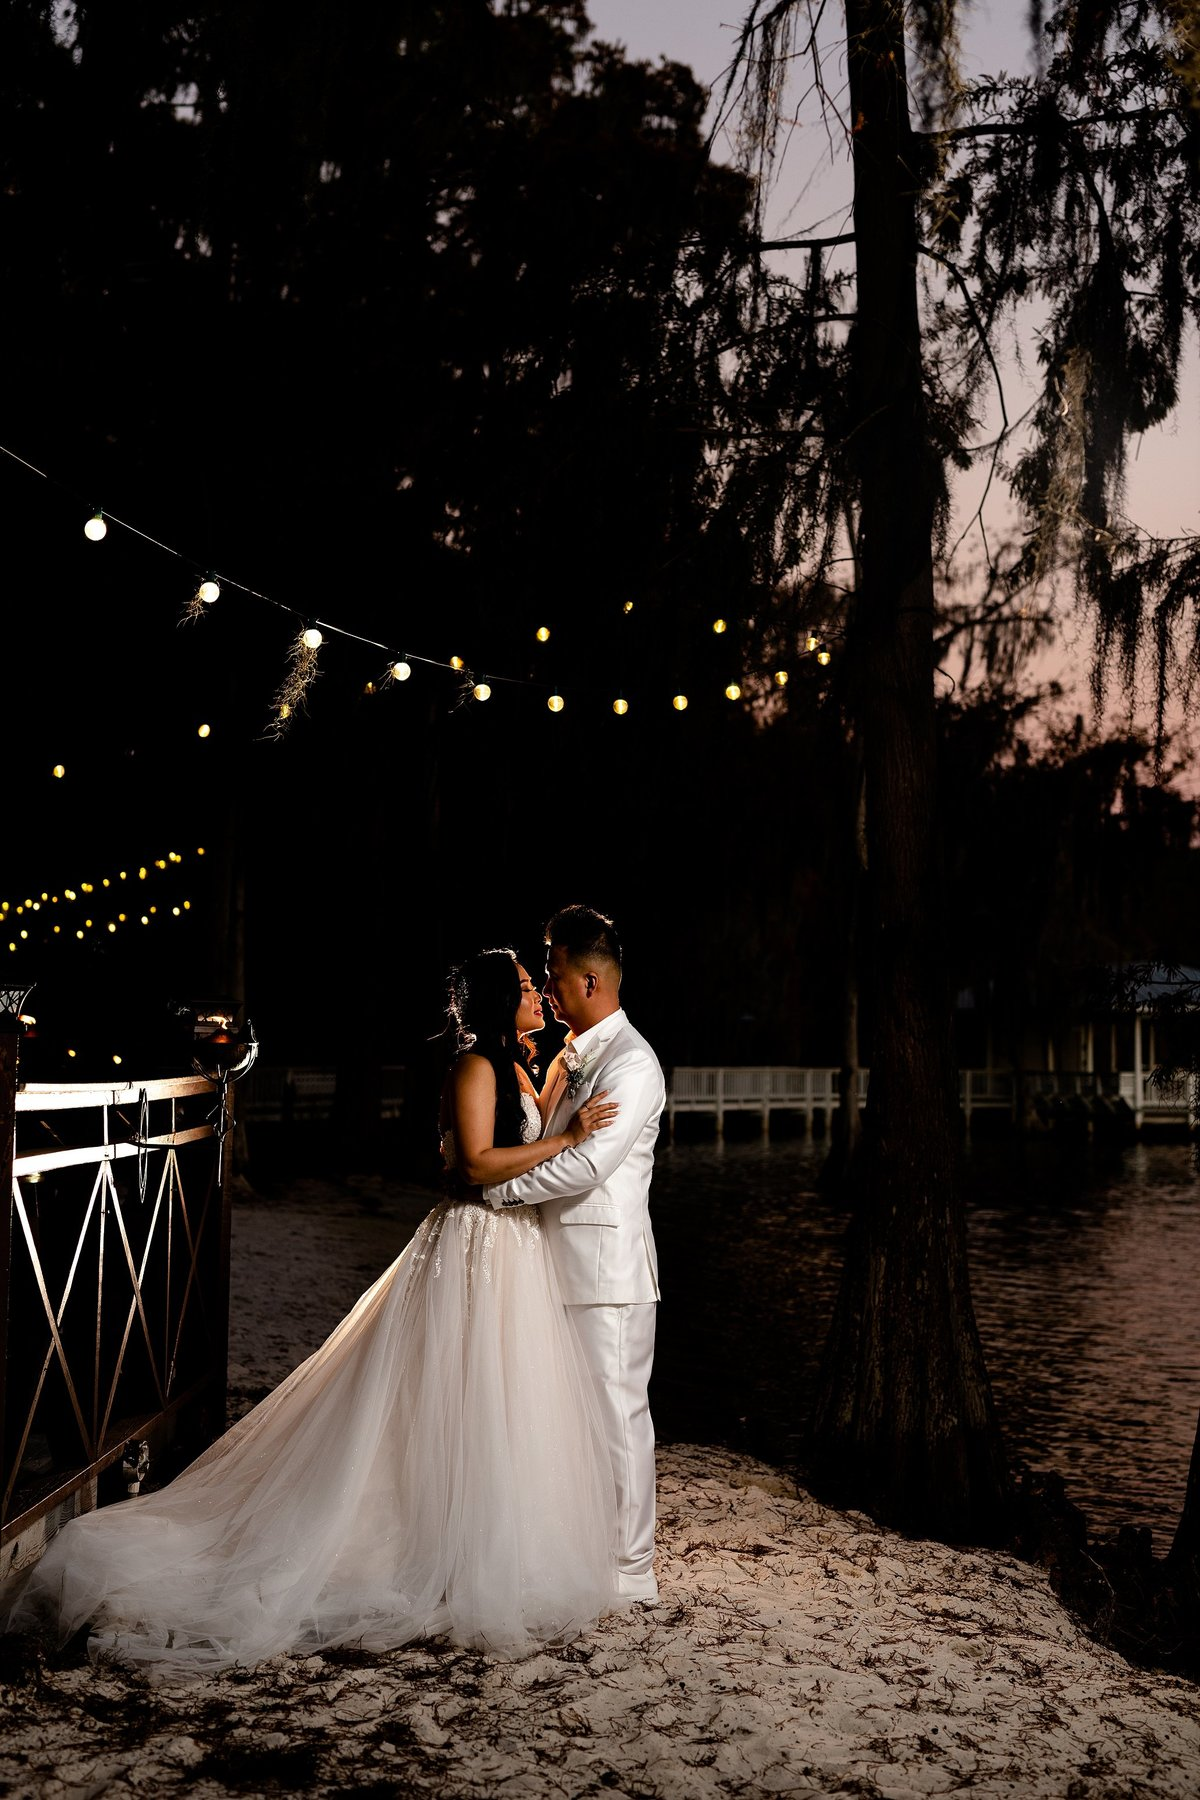 Paradise Cove Photographer | Orlando Wedding Photographer